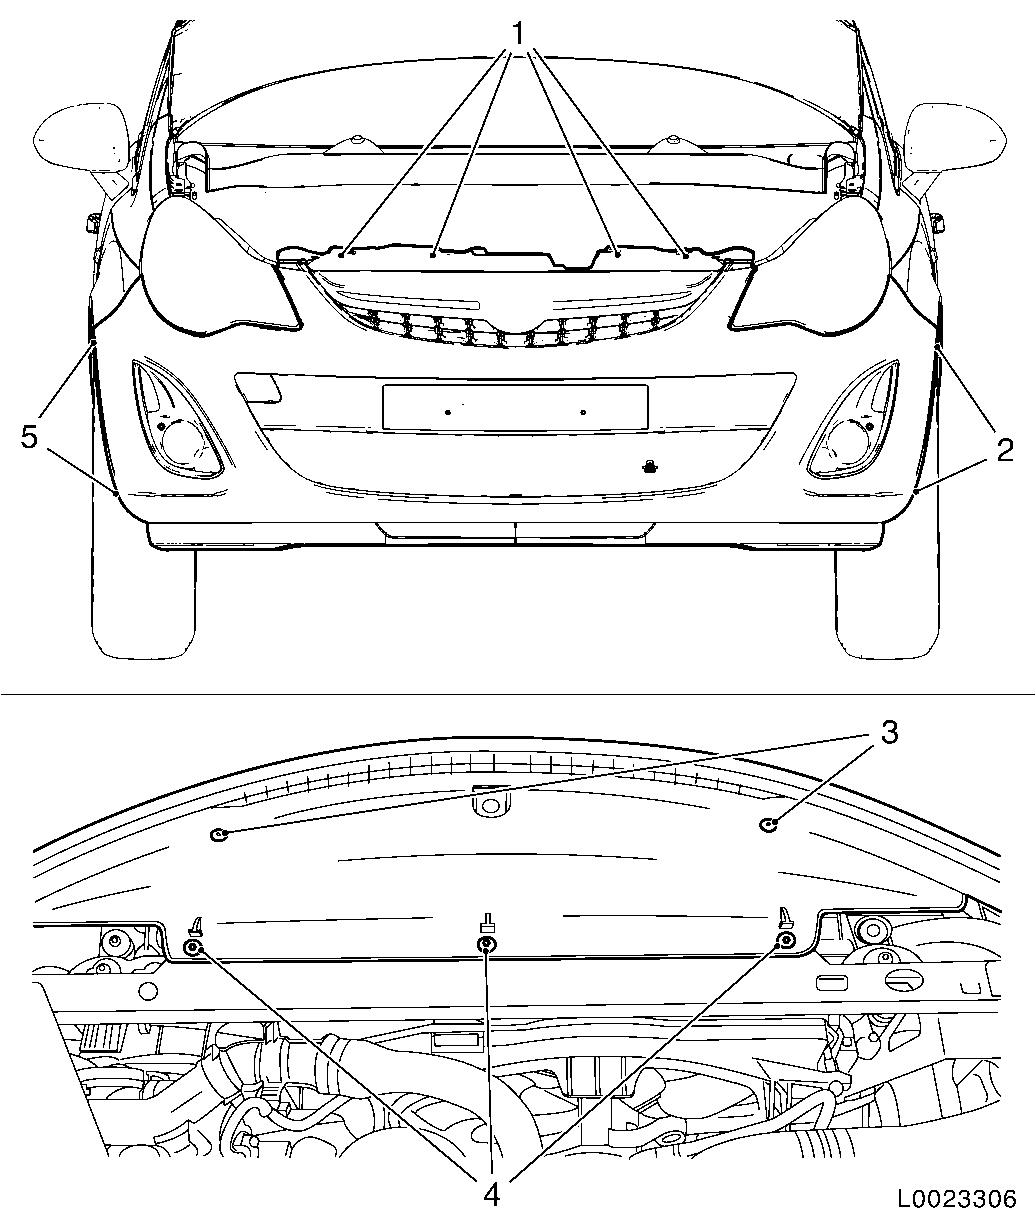 Vauxhall Workshop Manuals > Corsa D > A Maintenance, Body and Chassis Sheet Metal Parts, Frame